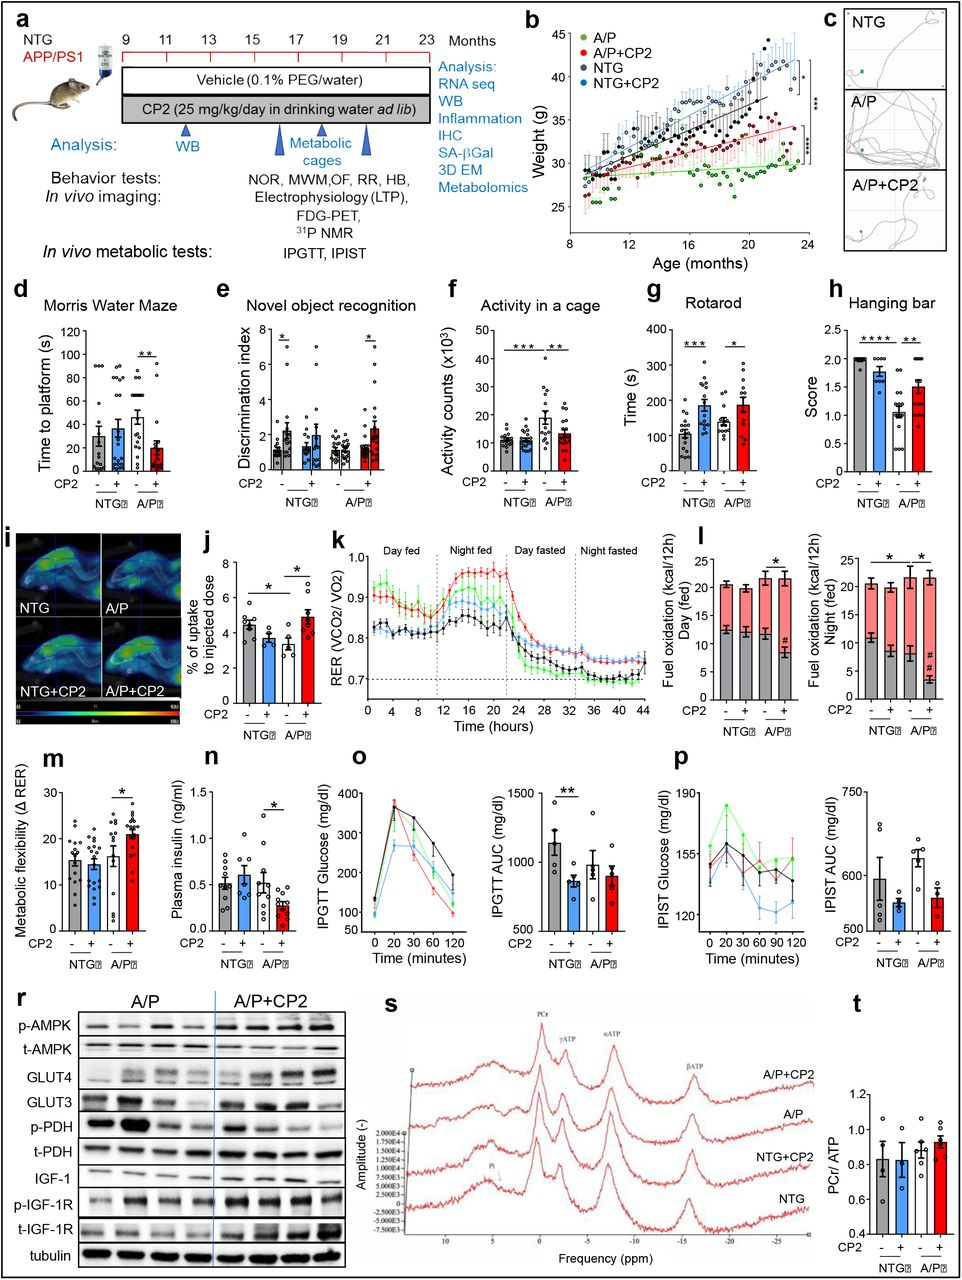 CP2 treatment restores cognitive function and increases glucose uptake and utilization in symptomatic APP/PS1 mice. a, Timeline of chronic CP2 treatment. b , Weight of NTG and APP/PS1 mice treated with vehicle or CP2 through the duration of the study. c-h , CP2 treatment improves performance in the Morris Water Maze ( c, d ) and in the Novel Object Recognition test ( e ), reduces hyperactivity of APP/PS1 mice in open field test ( f ), and increases motor strength and coordination on the rotating rod ( g ) and hanging bar ( h ). n = 17 - 20 mice per group. i , Glucose uptake was increased in the brain of CP2-treated APP/PS1 mice measured using FDG-PET after 9 months of treatment. j , Quantification of glucose uptake by FDG-PET imaging from ( i ). n = 5 - 8 mice per group. k , Changes in respiratory exchange ratio (RER) recorded in all treatment groups over 44 h during ad lib fed and fasting states. l , Glucose oxidation was increased in CP2-treated APP/PS1 mice fed ad lib based on CLAMS data from ( k ). Grey bars indicate fat consumption; orange bars indicate carbohydrate and protein oxidation. m , Metabolic flexibility is increased in CP2-treated APP/PS1 mice based on their ability to switch from carbohydrates to fat between feeding and fasting states. k-m , n = 15 - 20 mice per group. n-p , CP2 treatment reduces fasting insulin levels in plasma of APP/PS1 mice ( n ); increases glucose tolerance in NTG mice measured by intraperitoneal glucose tolerance test (IPGTT) ( o ); and displays tendency to improve intraperitoneal insulin sensitivity test (IPIST) in NTG and APP/PS1 mice ( p ) after 9 - 10 months of treatment. n = 5 - 10 mice per group. r, Western blot analysis conducted in the brain tissue of APP/PS1 mice treated with CP2 for 13 months indicates increased IGF-1signaling, expression of Glut 3 and 4 transporters and changes in pyruvate dehydrogenase (PDH) activation associated with glucose utilization in the TCA cycle. s, Representative 31 P NMR spectra with peaks corresponding to energy metabolites, including inorganic phosphate (Pi), phosphocreatine (PCr), and three phosphate group peaks for ATP generated in living NTG and APP/PS1 mice after 9 months of vehicle or CP2 treatment. t , Phosphocreatine/ATP ratio calculated based on the 31 P NMR in vivo spectra from ( s ). n = 4 - 6 mice per group. Data are presented as mean ± S.E.M. Data were analyzed by two-way ANOVA with Fisher`s LSD post-hoc test. A paired Student t -test was used for statistical analysis of NOR test. *P